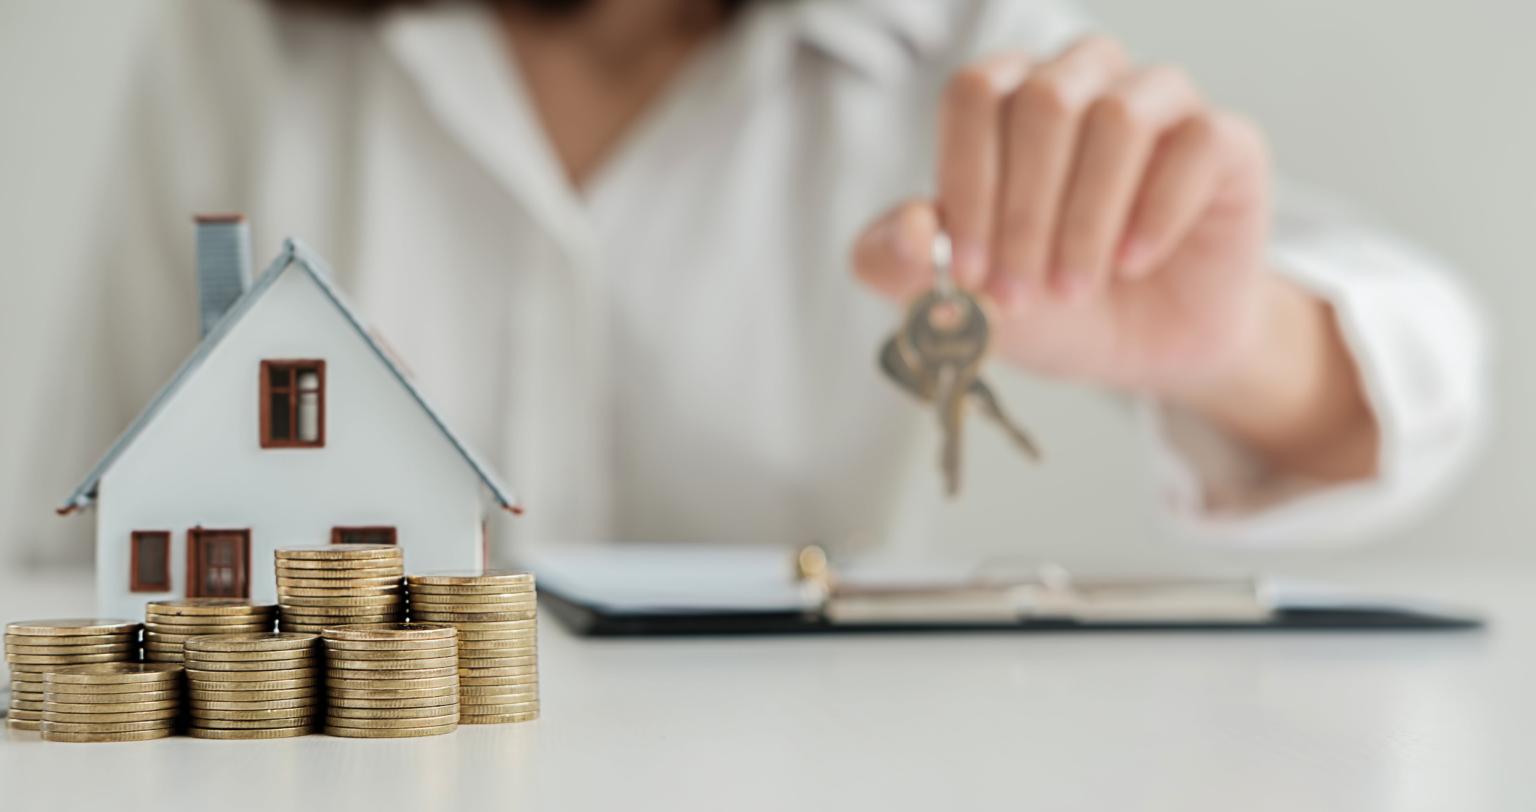 What to do with Unfair Rent?